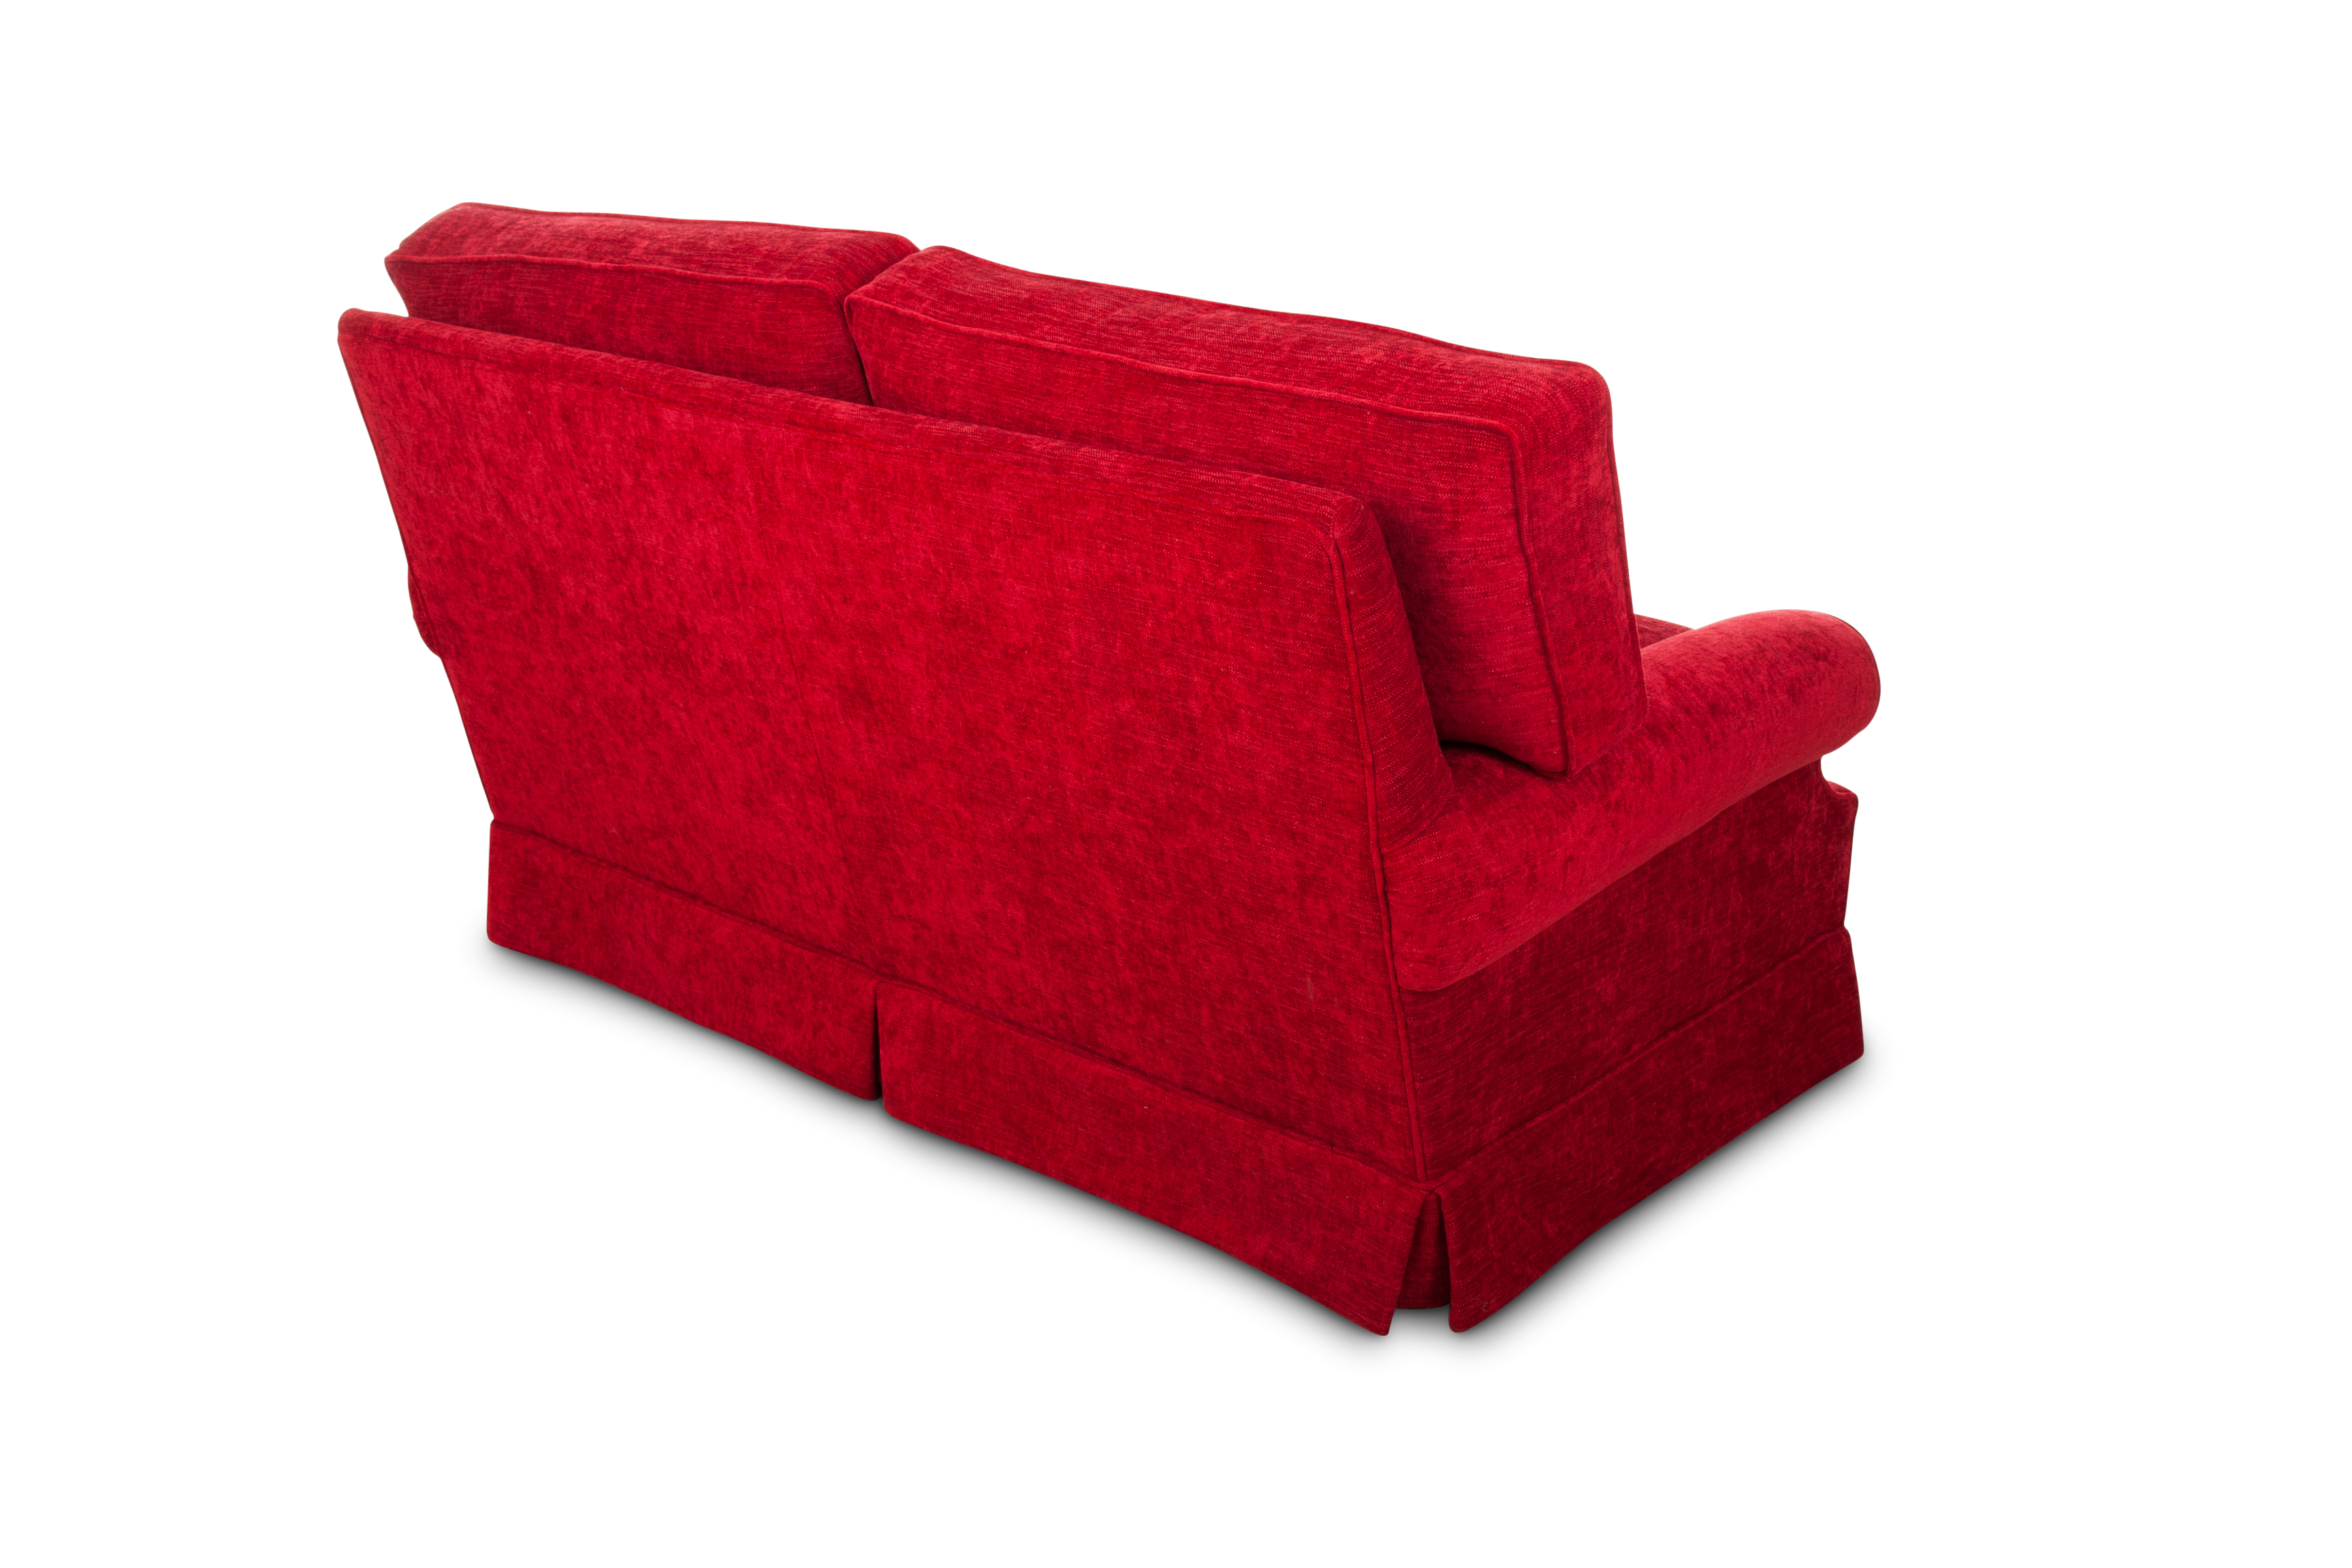 chesterton sofas and chairs